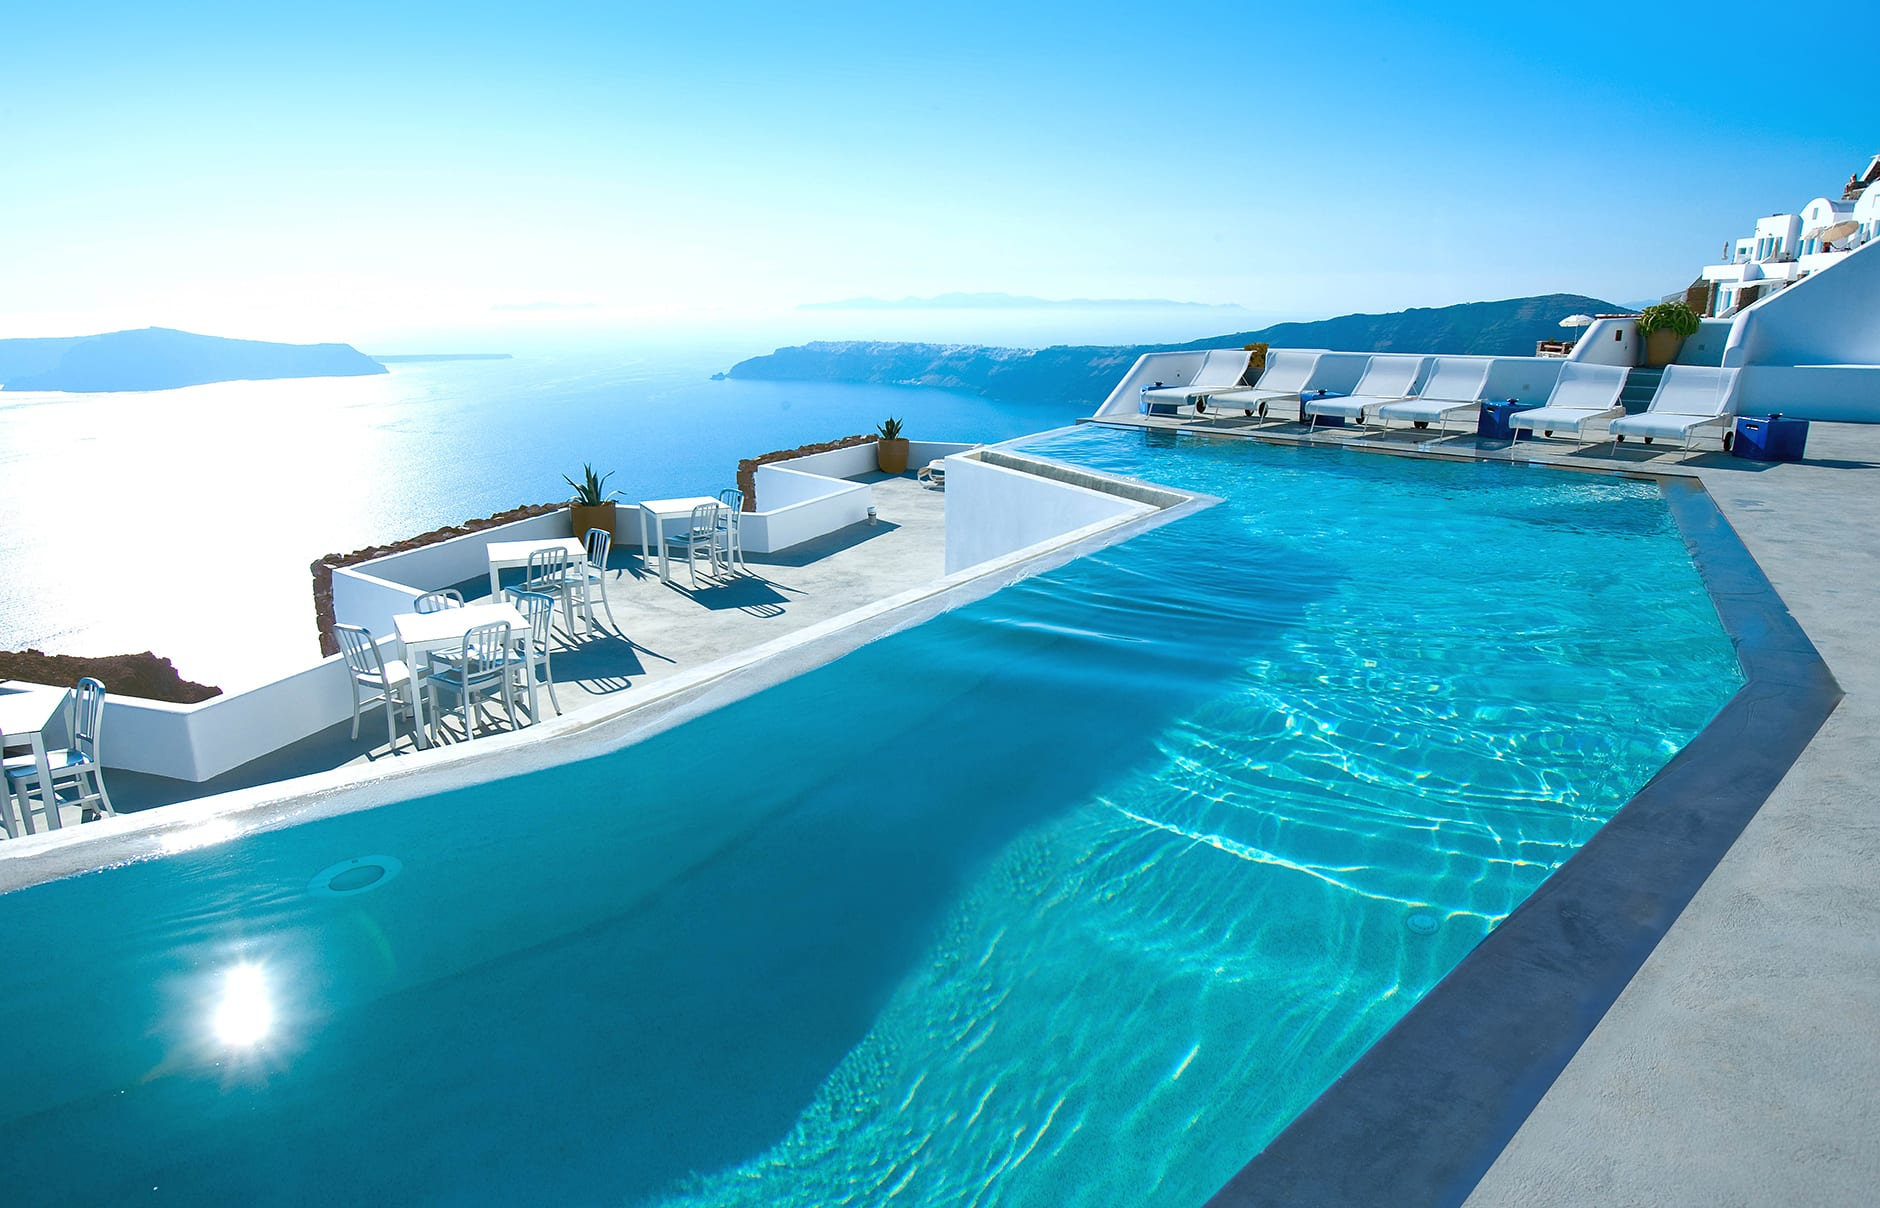 Infinity pool. Grace Hotel Santorini, Greece. Luxury Hotel Review by TravelPlusStyle. Photo © Auberge Resorts CollectionCollection